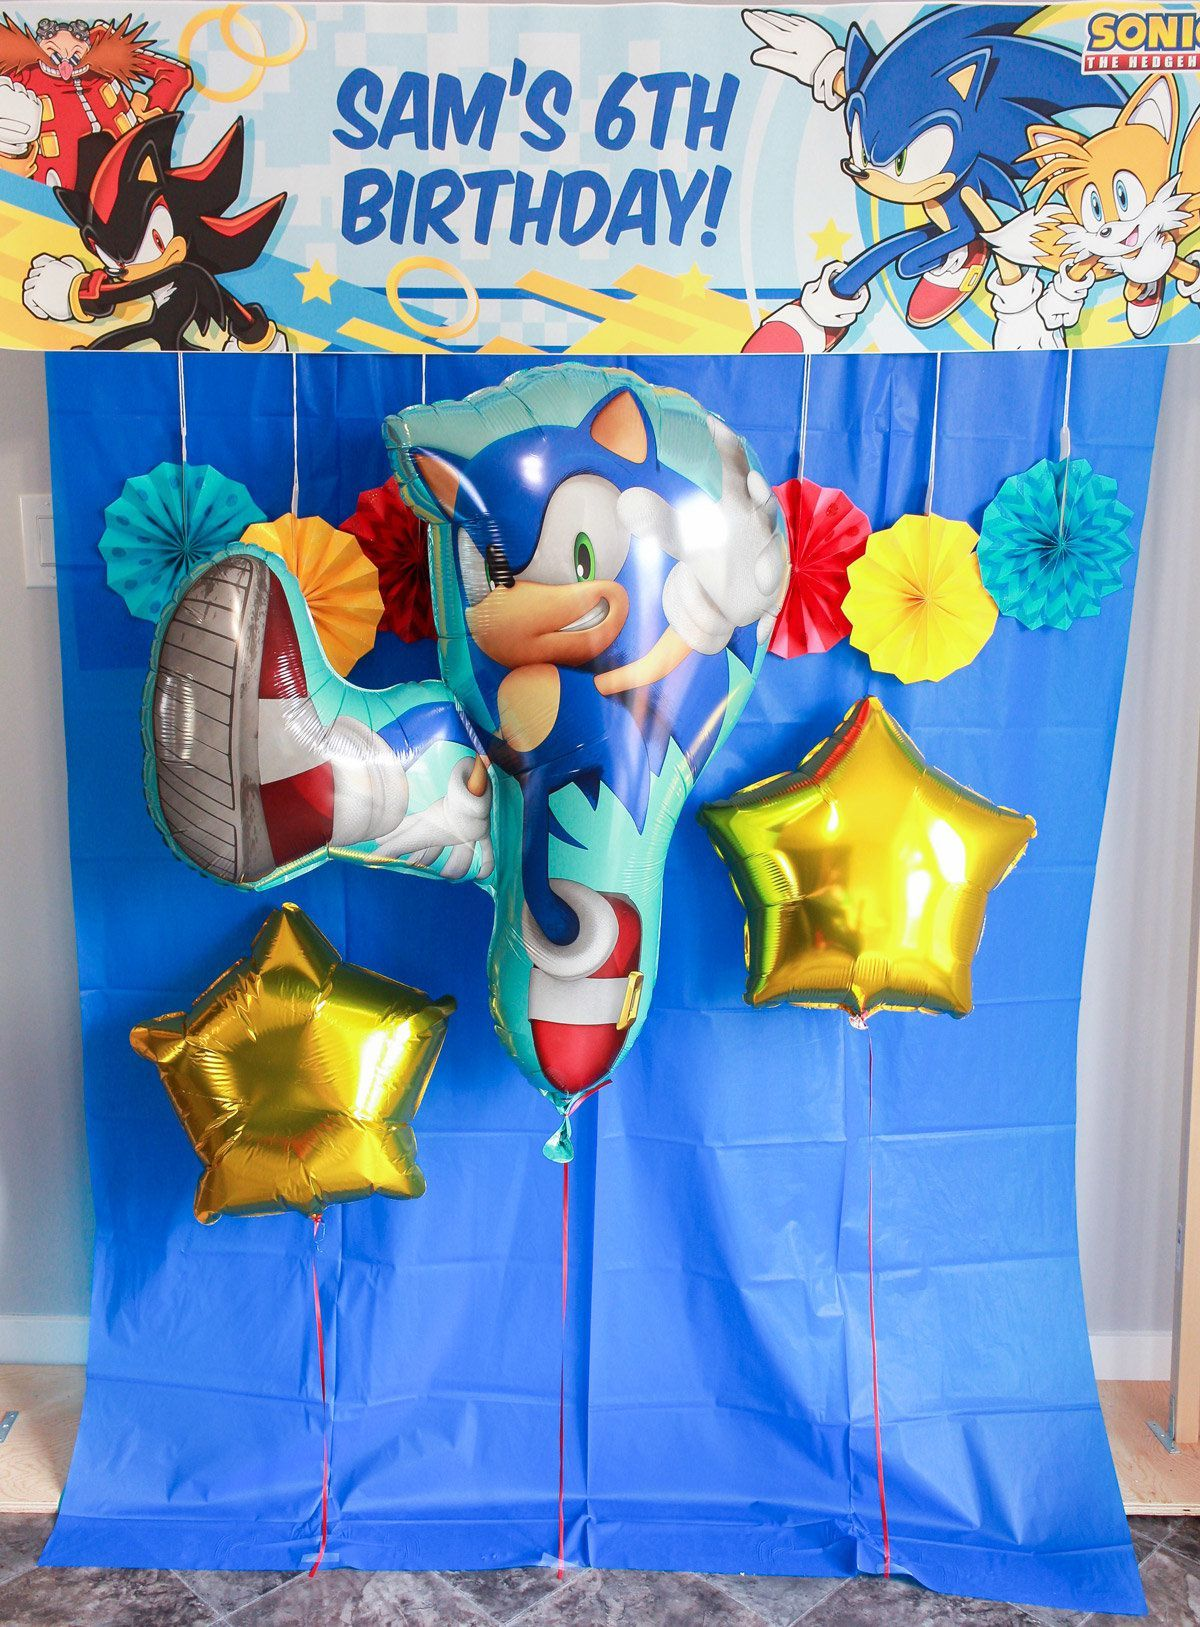 The Ultimate Sonic The Hedgehog 6th Birthday Party Supplies Balloon Decorations